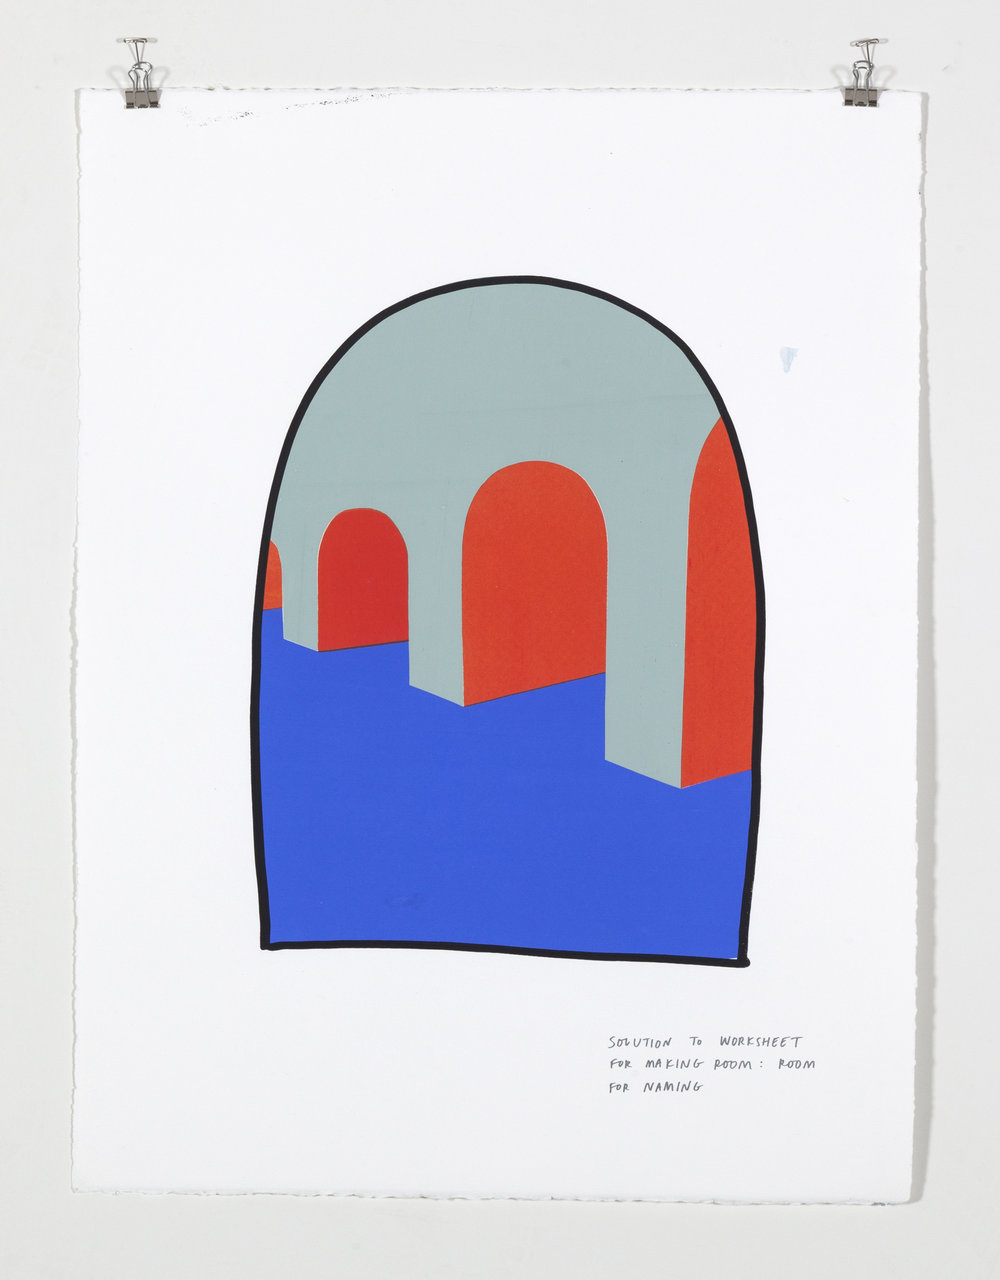 Solution to Worksheet for Making Room: Room for Naming,  2018  Five color silkscreen print on paper 19 7/8 x 25 7/8 inches